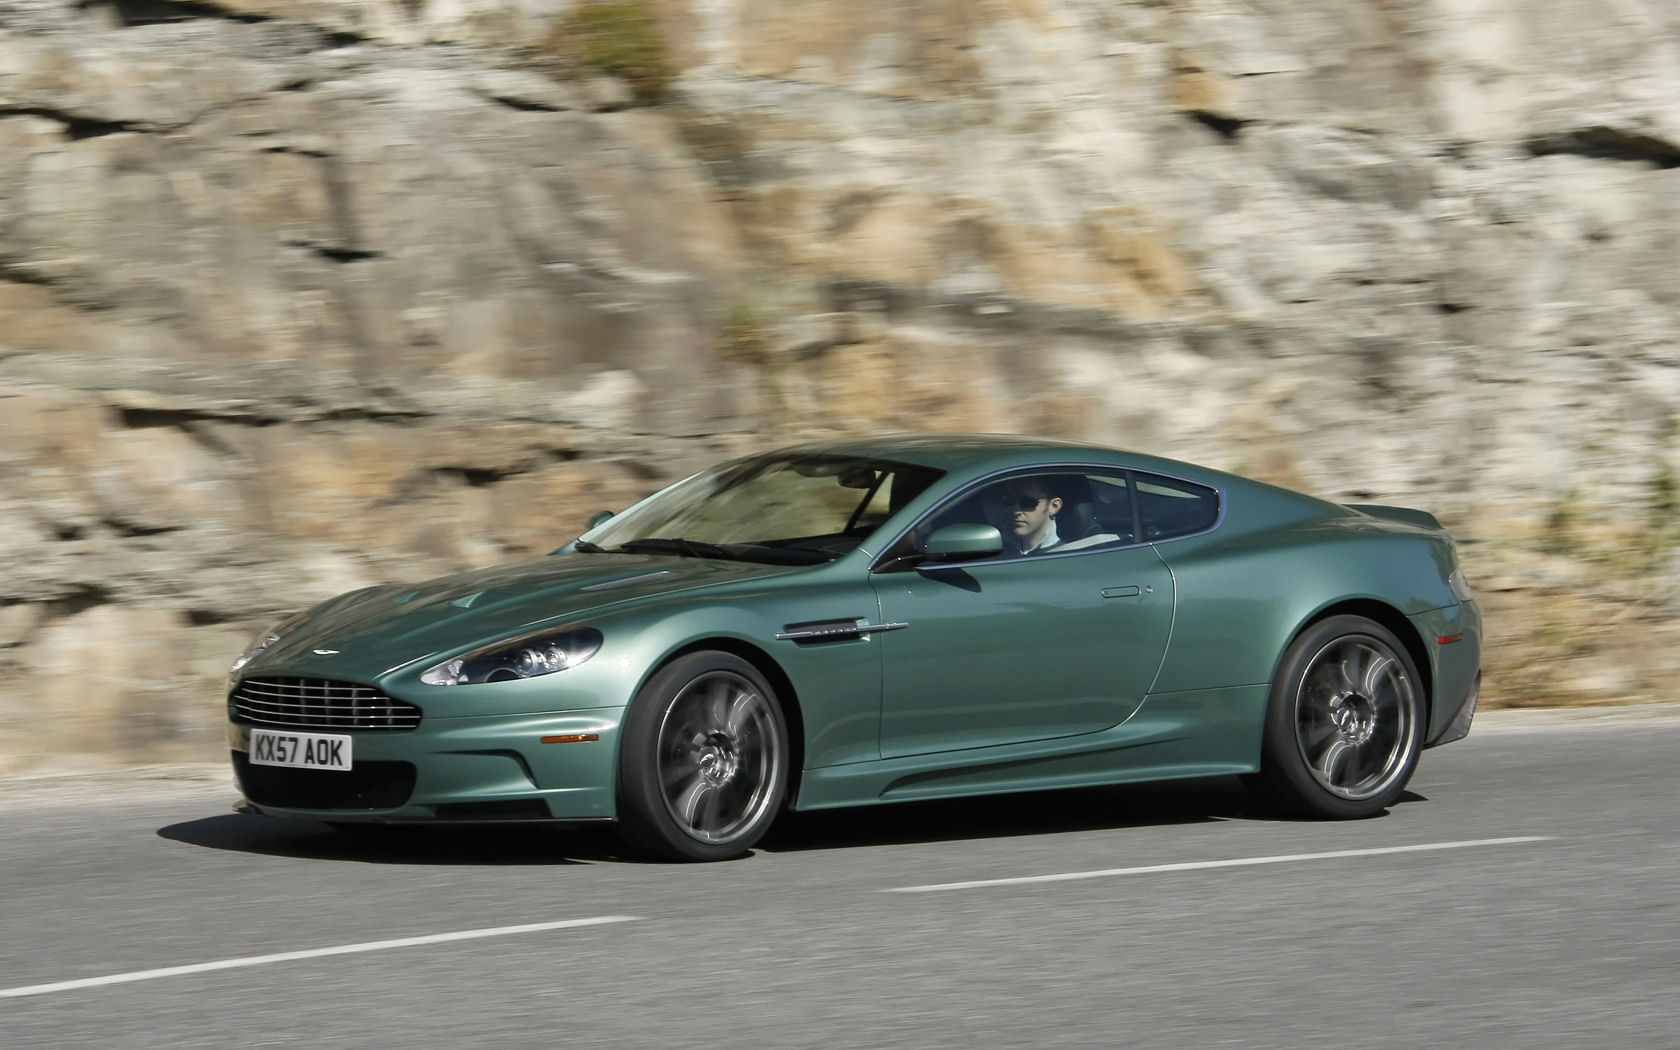 aston martin dbs v12 wallpaper - photo #21